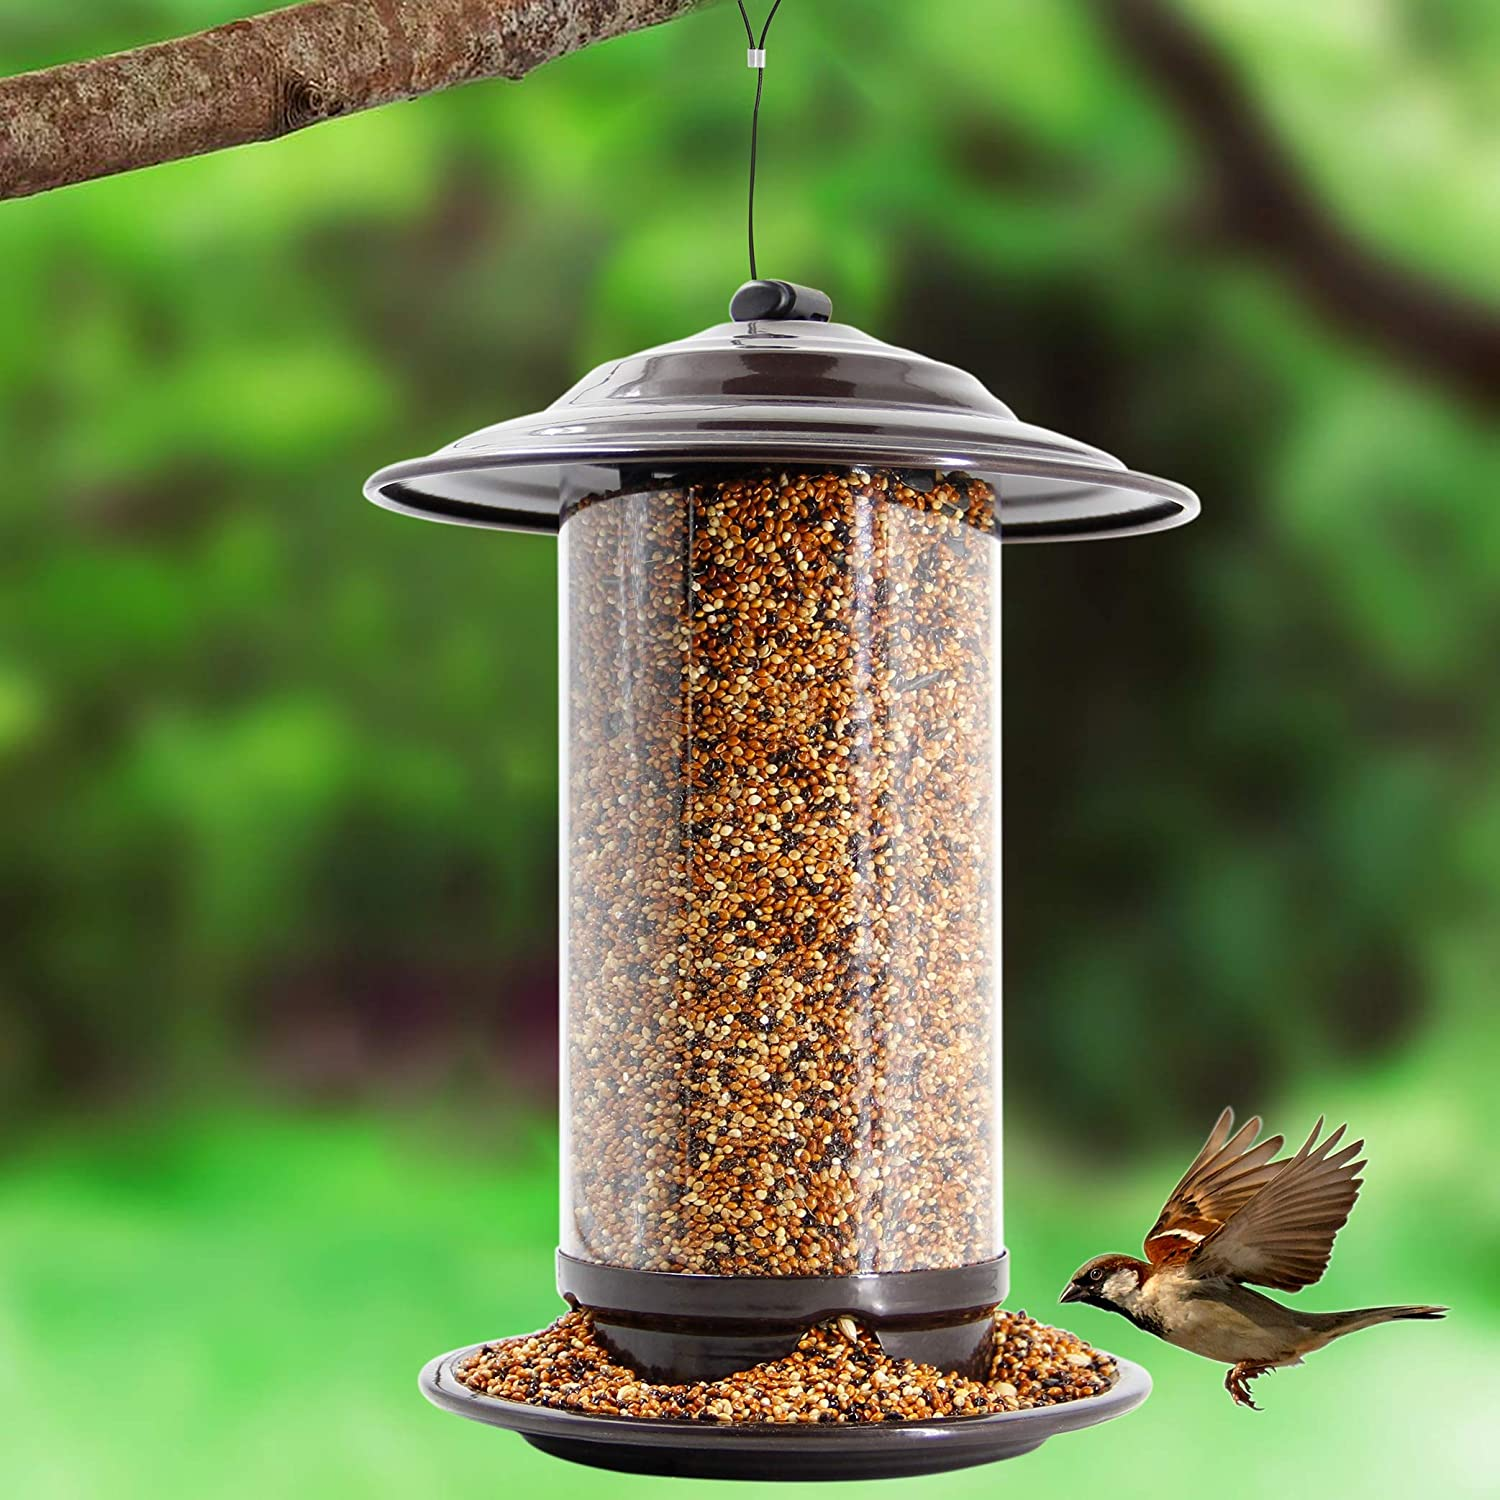 Mestool Panorama Bird Feeder, Wild Bird Feeder Hanging for Garden Yard Outside Decoration, Antique Dome Shaped Roof, Copper